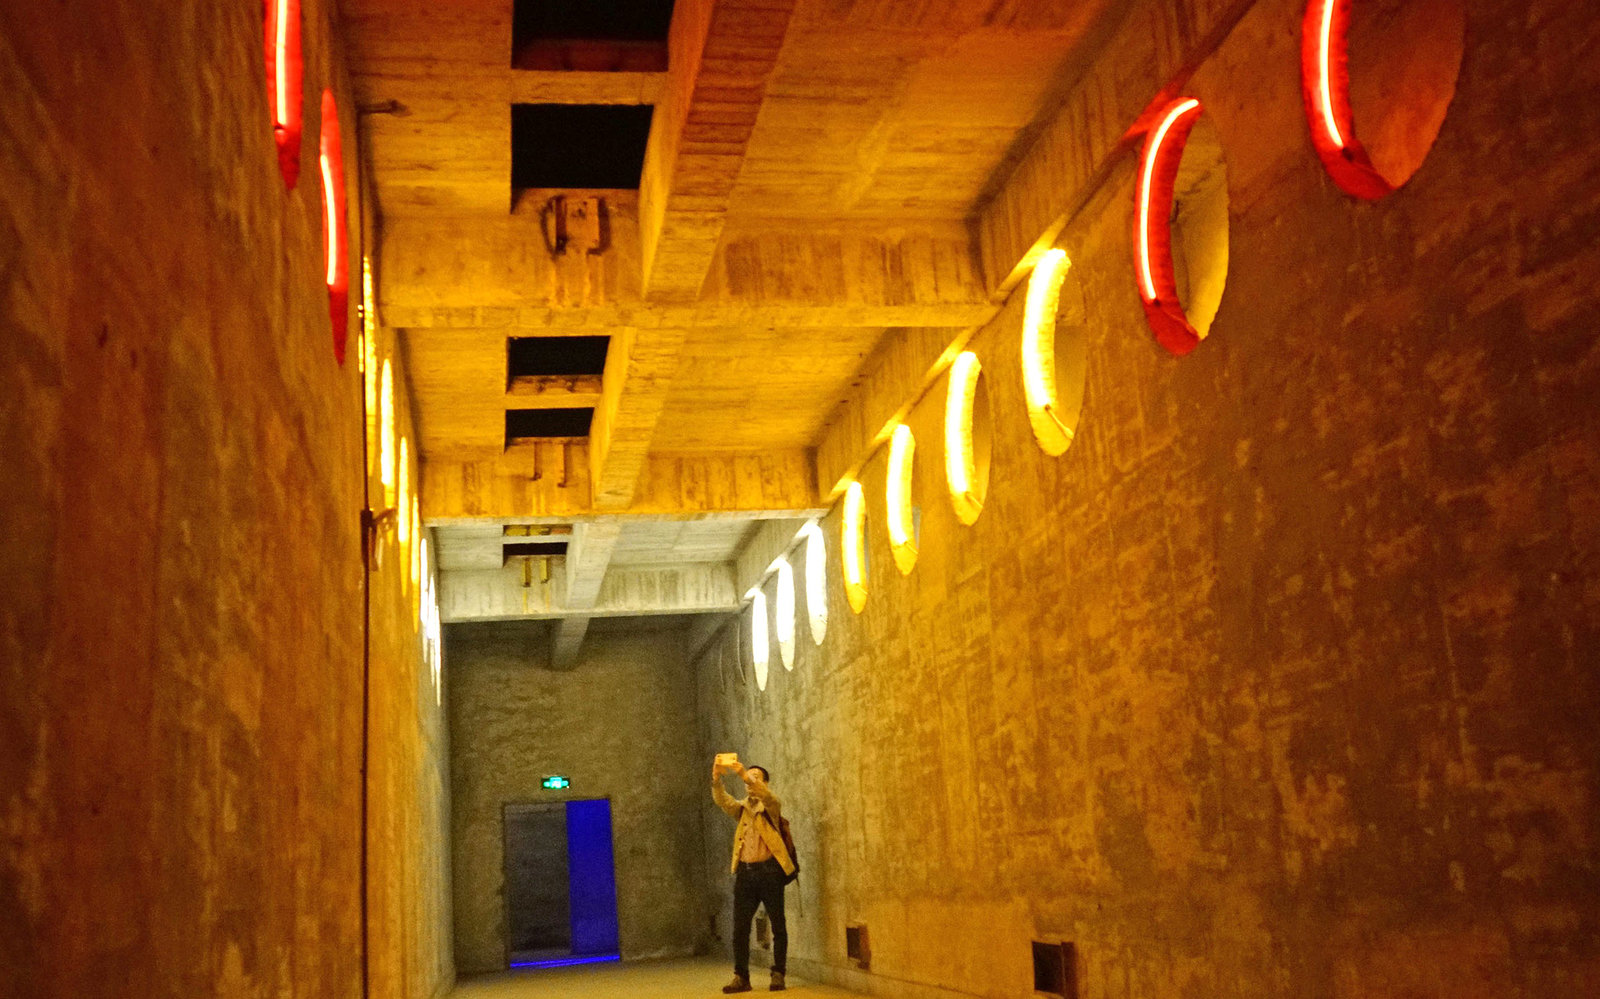 Chinas Nuclear Bunker Opens to Public